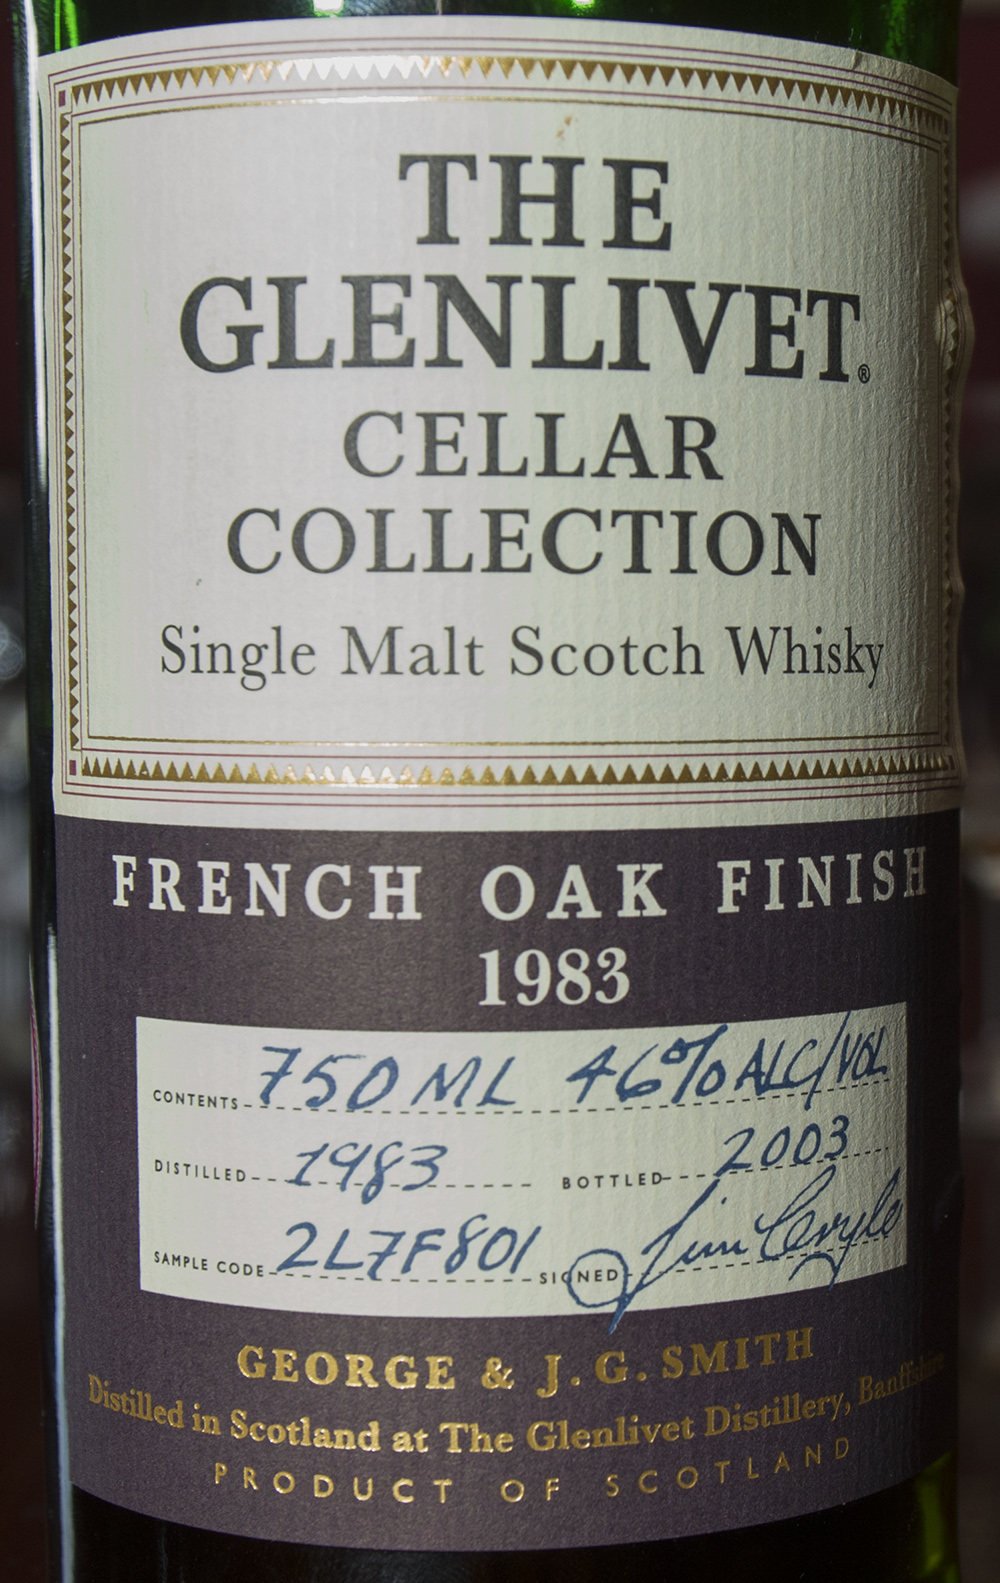 Billede: DSC_1025 The Glenlivet Cellar Collection French Oak Finish 1983-2003.jpg